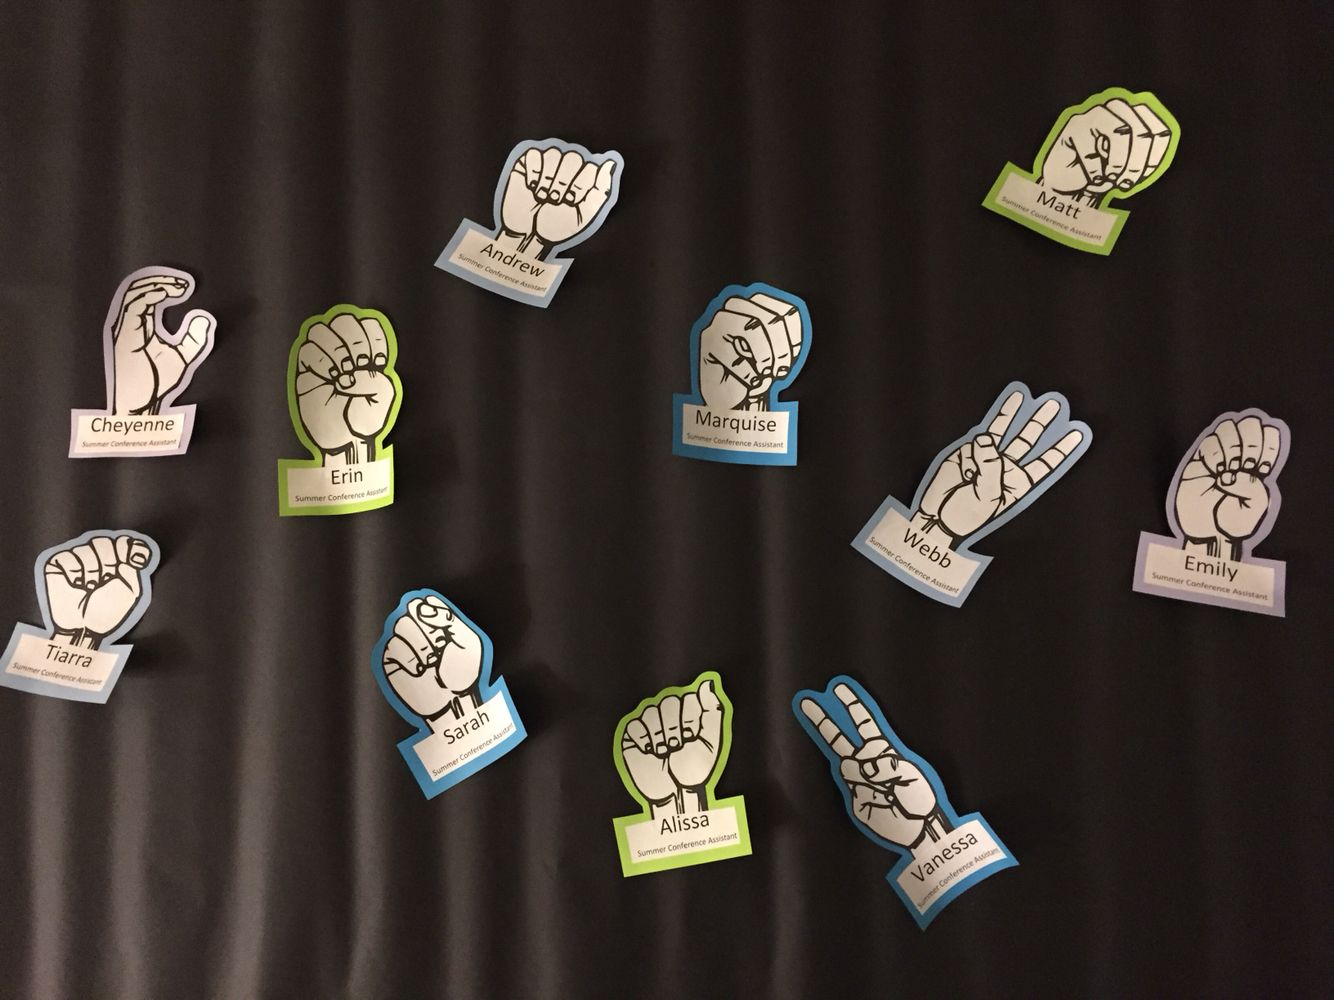 American Sign Language Door Decs Each personu0027s first letter of their name finger spelled letters! #RA #ASL #door #decs #sign #language ... & American Sign Language Door Decs Each personu0027s first letter of their ...